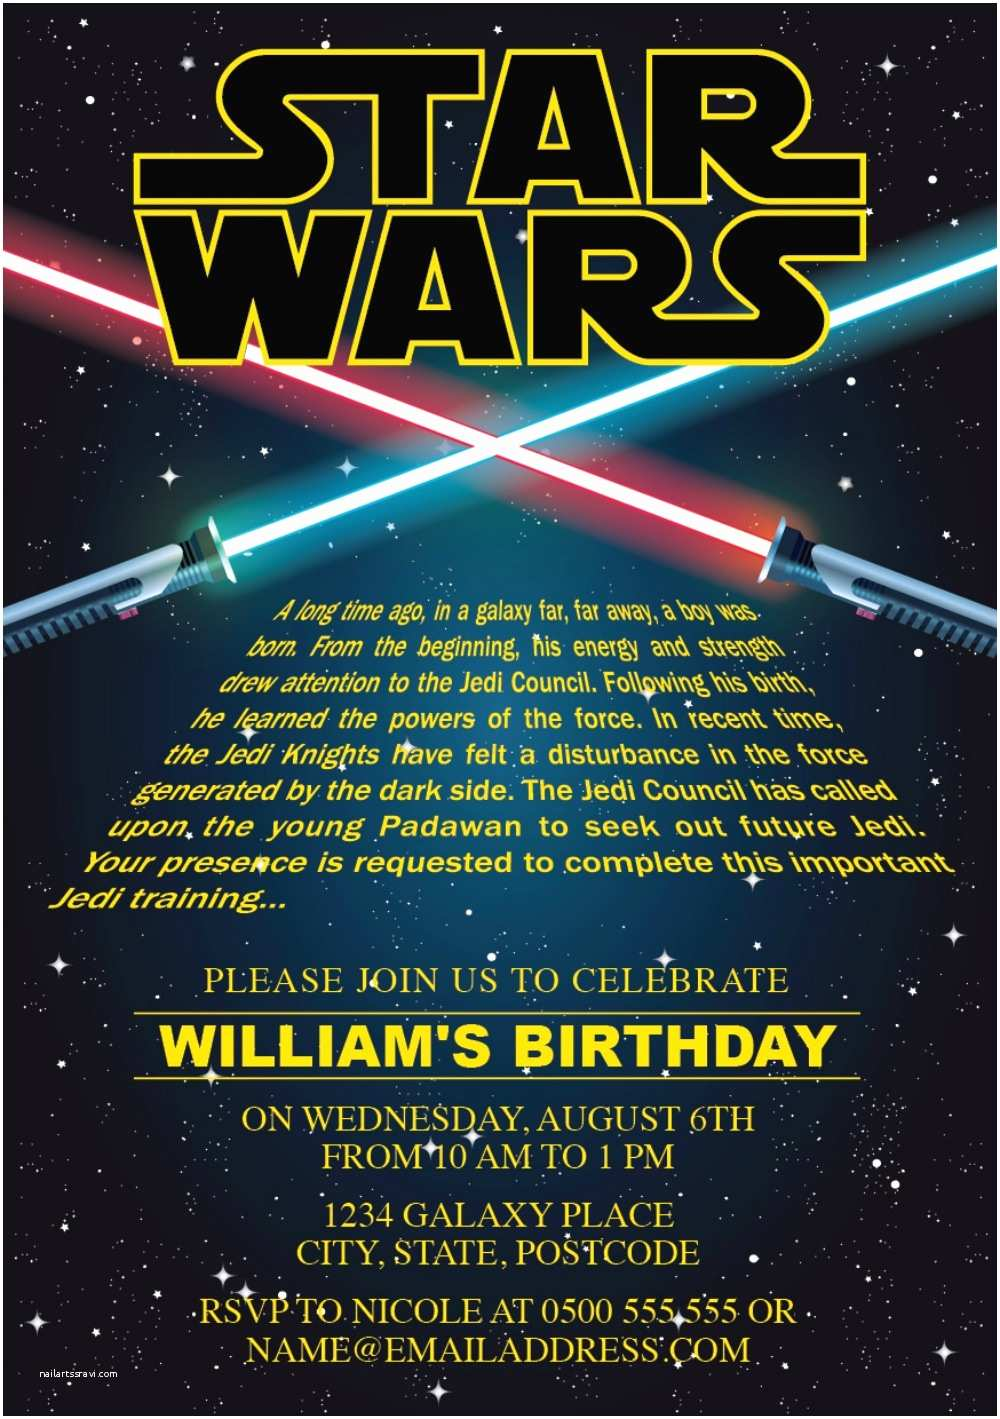 Star Wars Party Invitations Star Wars Party Invitation